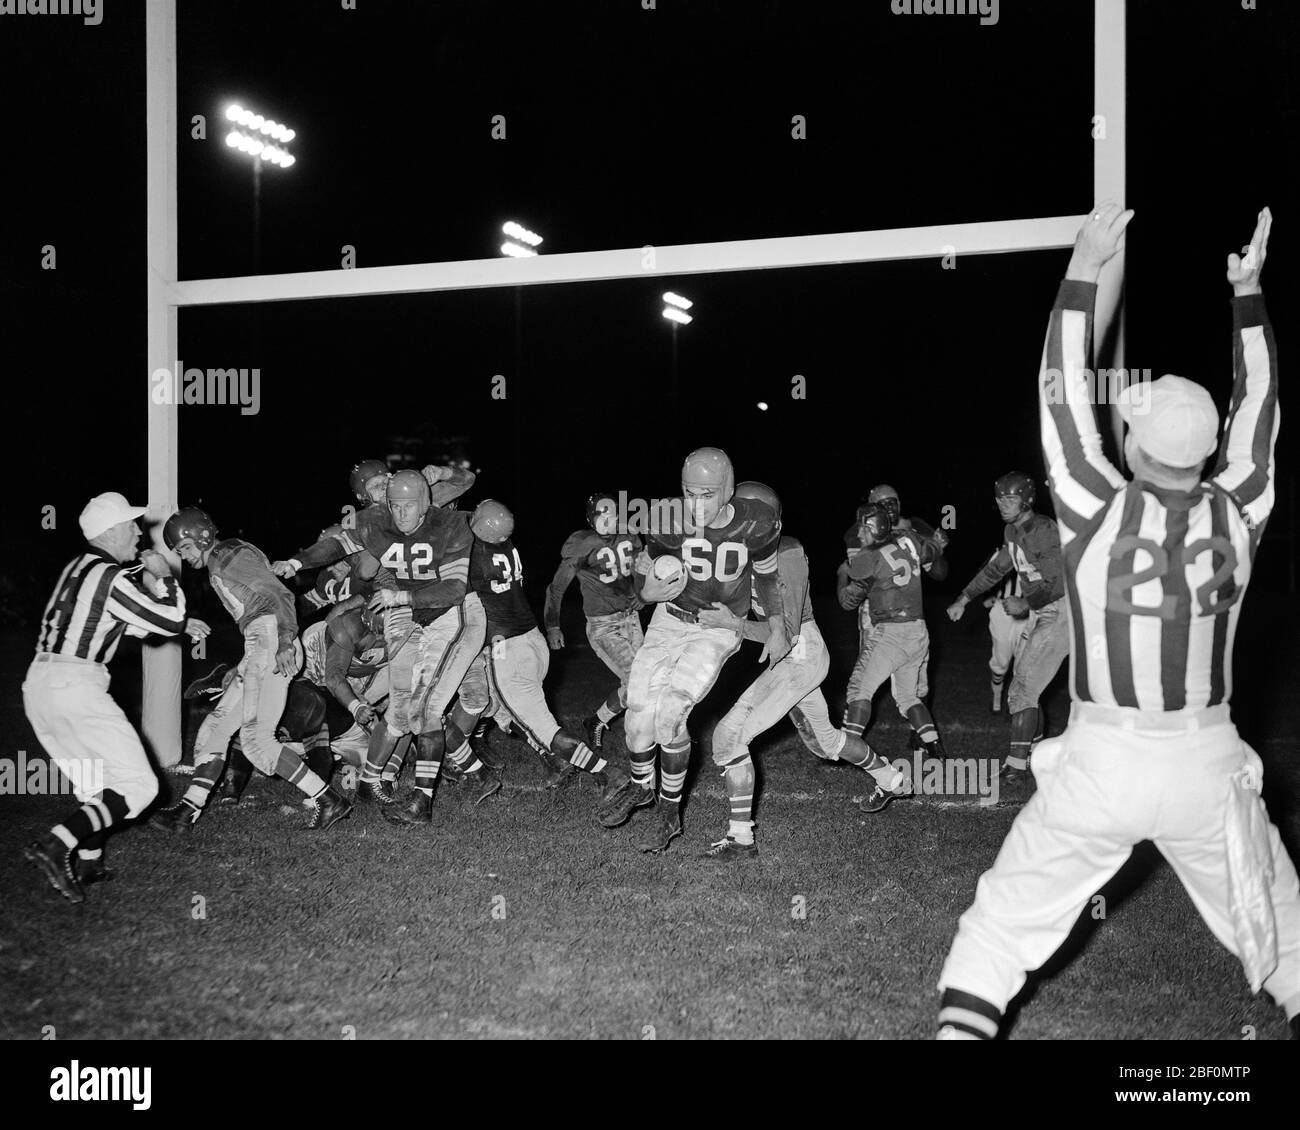 1950s NIGHT 9/16/1950 FIRST NFL FOOTBALL GAME PHILADELPHIA EAGLES VS CLEVELAND BROWNS OTTO GRAHAM SCORING TD PHILADELPHIA PA USA - f683 HAR001 HARS ATHLETICS COPY SPACE FULL-LENGTH PERSONS INSPIRATION MALES ATHLETIC PROFESSION ENTERTAINMENT NUMBERS PLAYERS B&W SUCCESS WIDE ANGLE SKILL OCCUPATION SKILLS UMPIRE VICTORY EAGLES CAREERS EXCITEMENT PA OCCUPATIONS UNIFORMS PROFESSIONAL SPORTS CLEVELAND CONNECTION GOAL POST VS ATHLETES SCORING TOUCHDOWN FOOTBALLS MID-ADULT MID-ADULT MAN PRO TOGETHERNESS VS. YOUNG ADULT MAN AMERICAN FOOTBALL BLACK AND WHITE HAR001 OLD FASHIONED Stock Photo